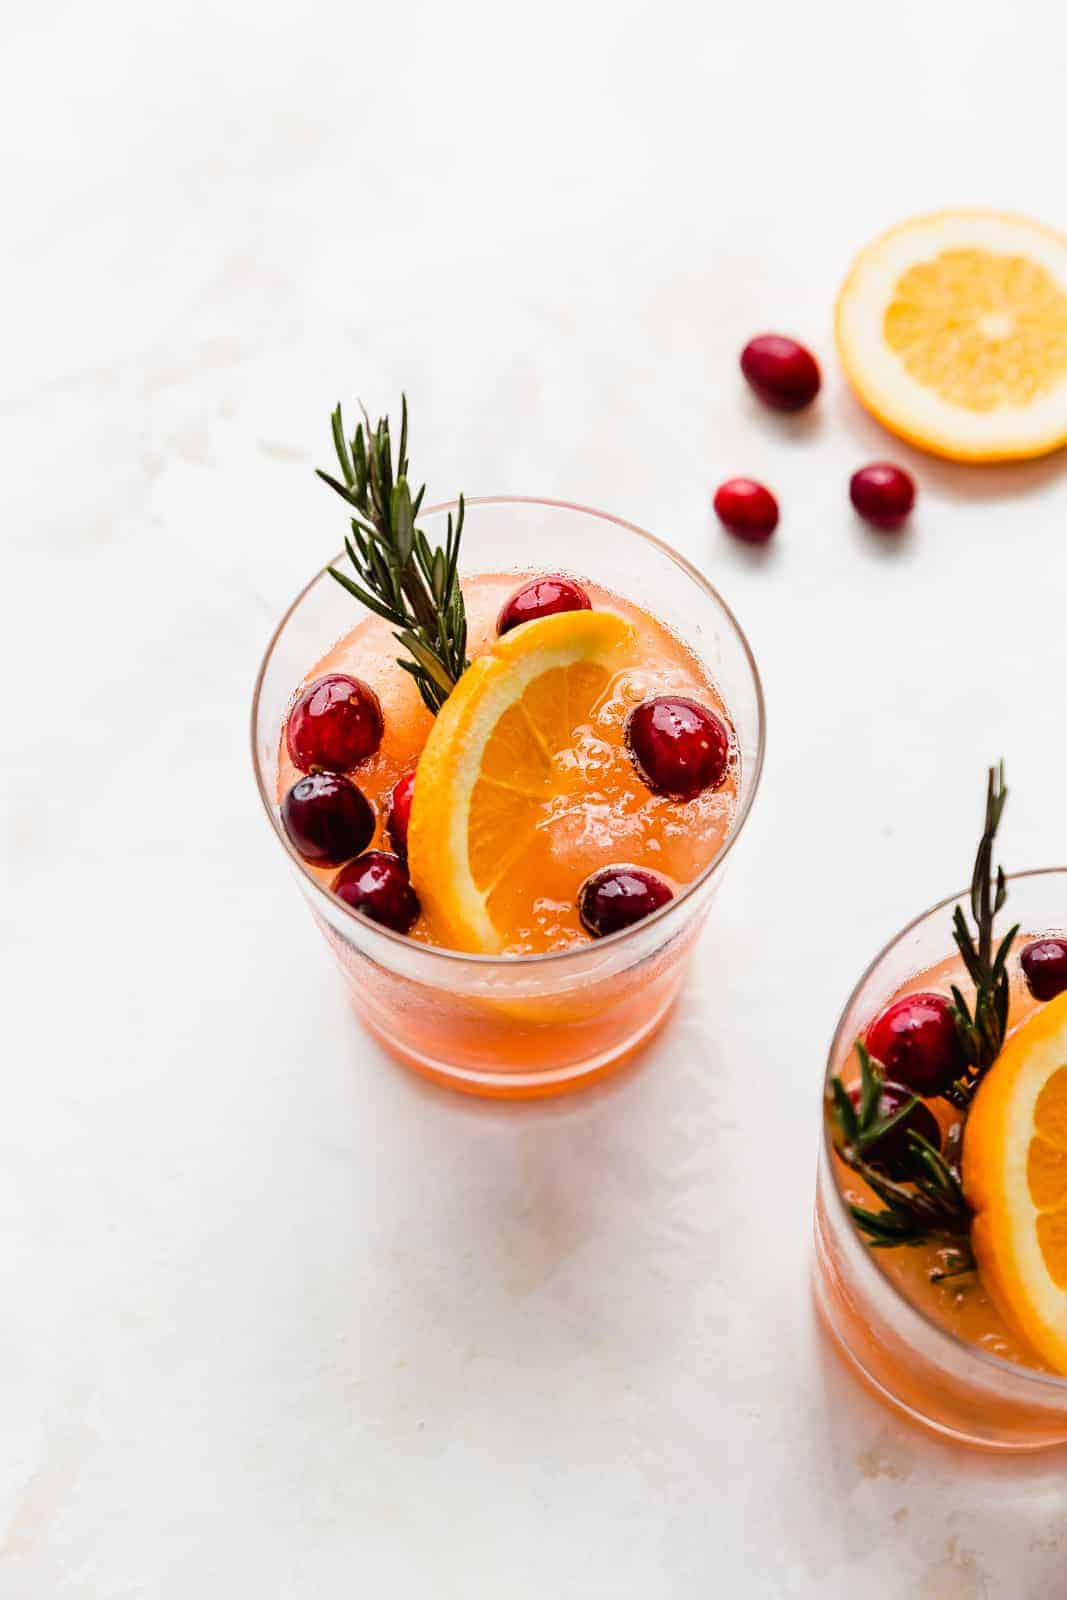 A glass full of slushy Christmas cranberry punch garnished with an orange slice and fresh cranberries.